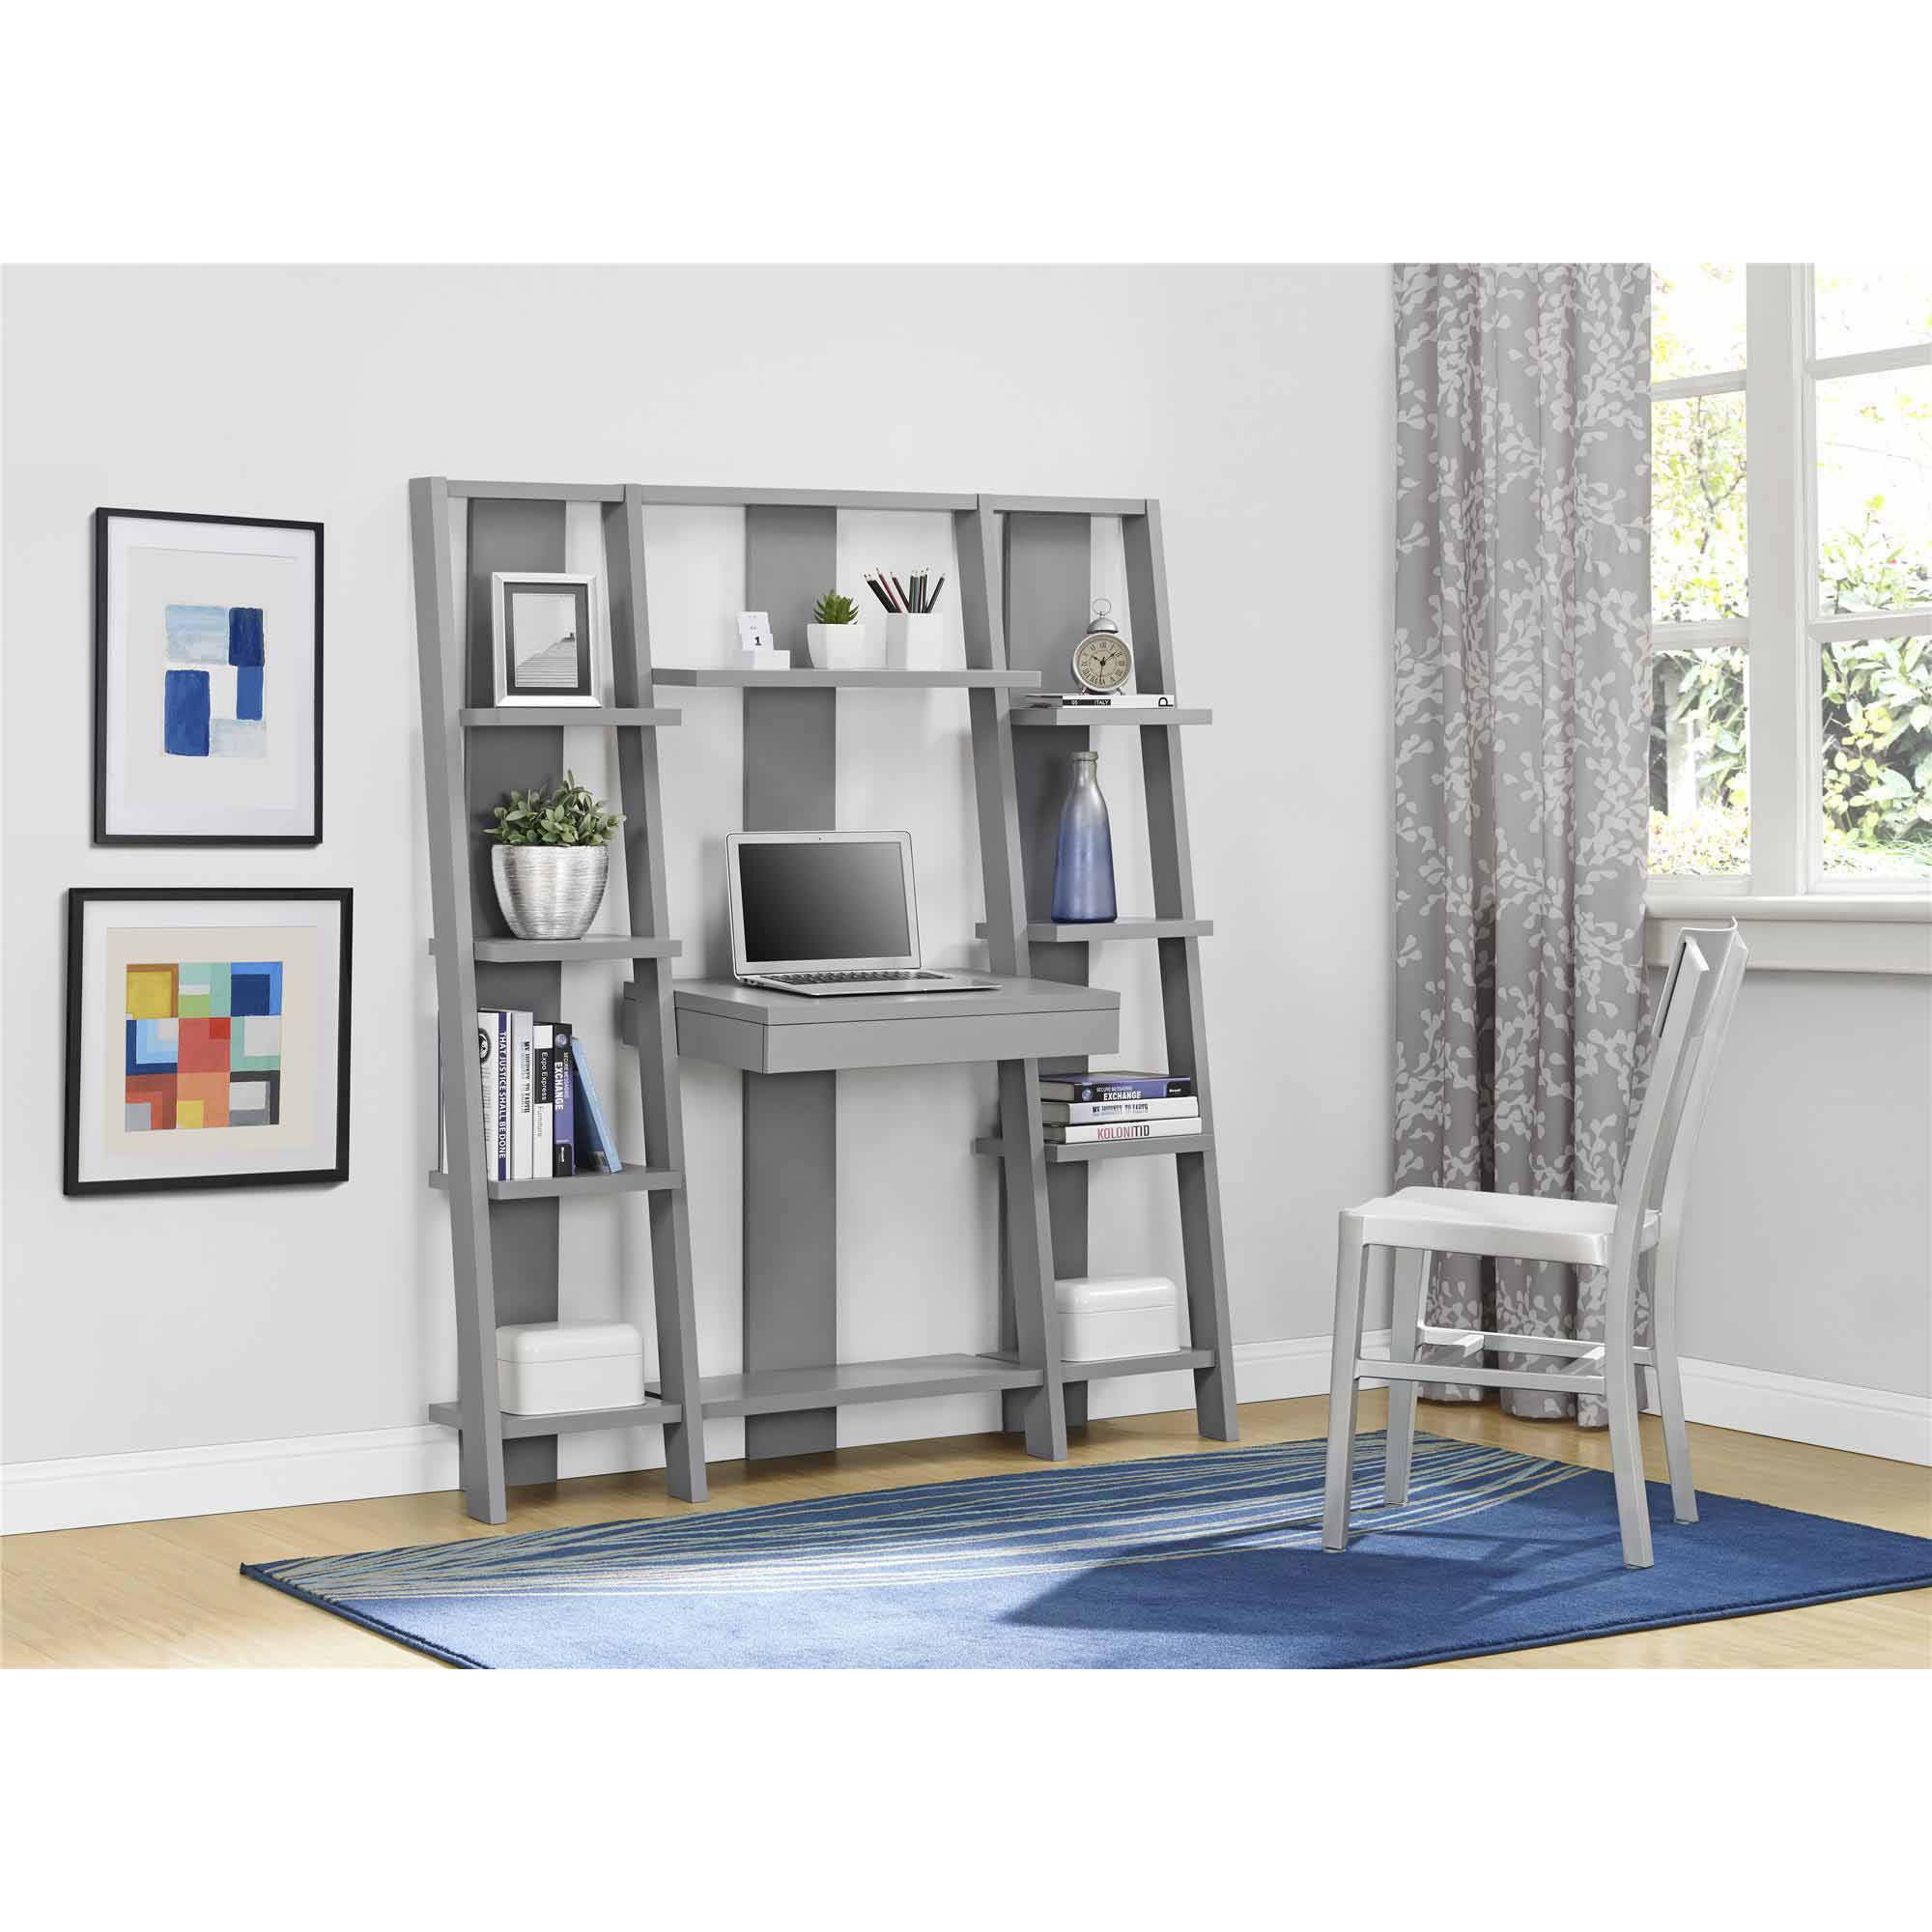 Altra Furniture Ladder Storage Office Wa Walmart Com Walmart Com